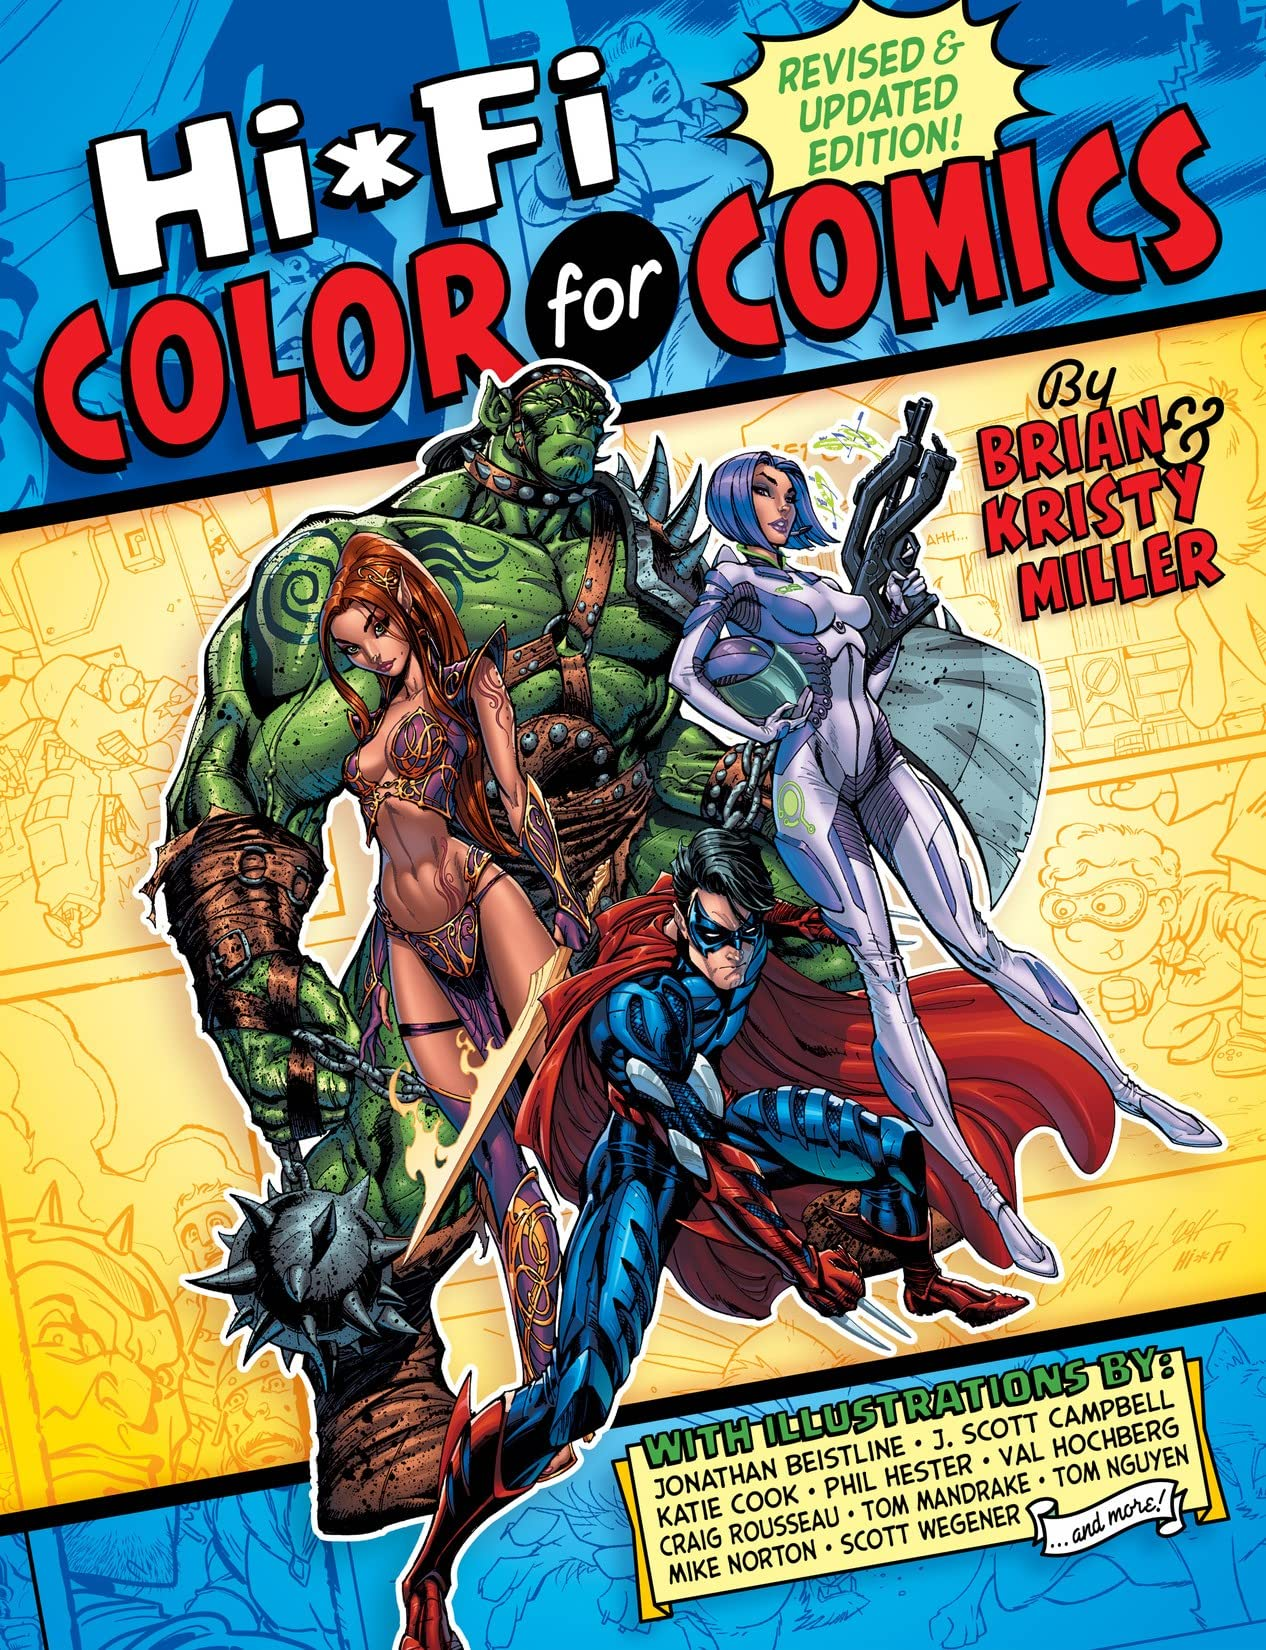 Hi-Fi Color for Comics: Revised & Updated Edition